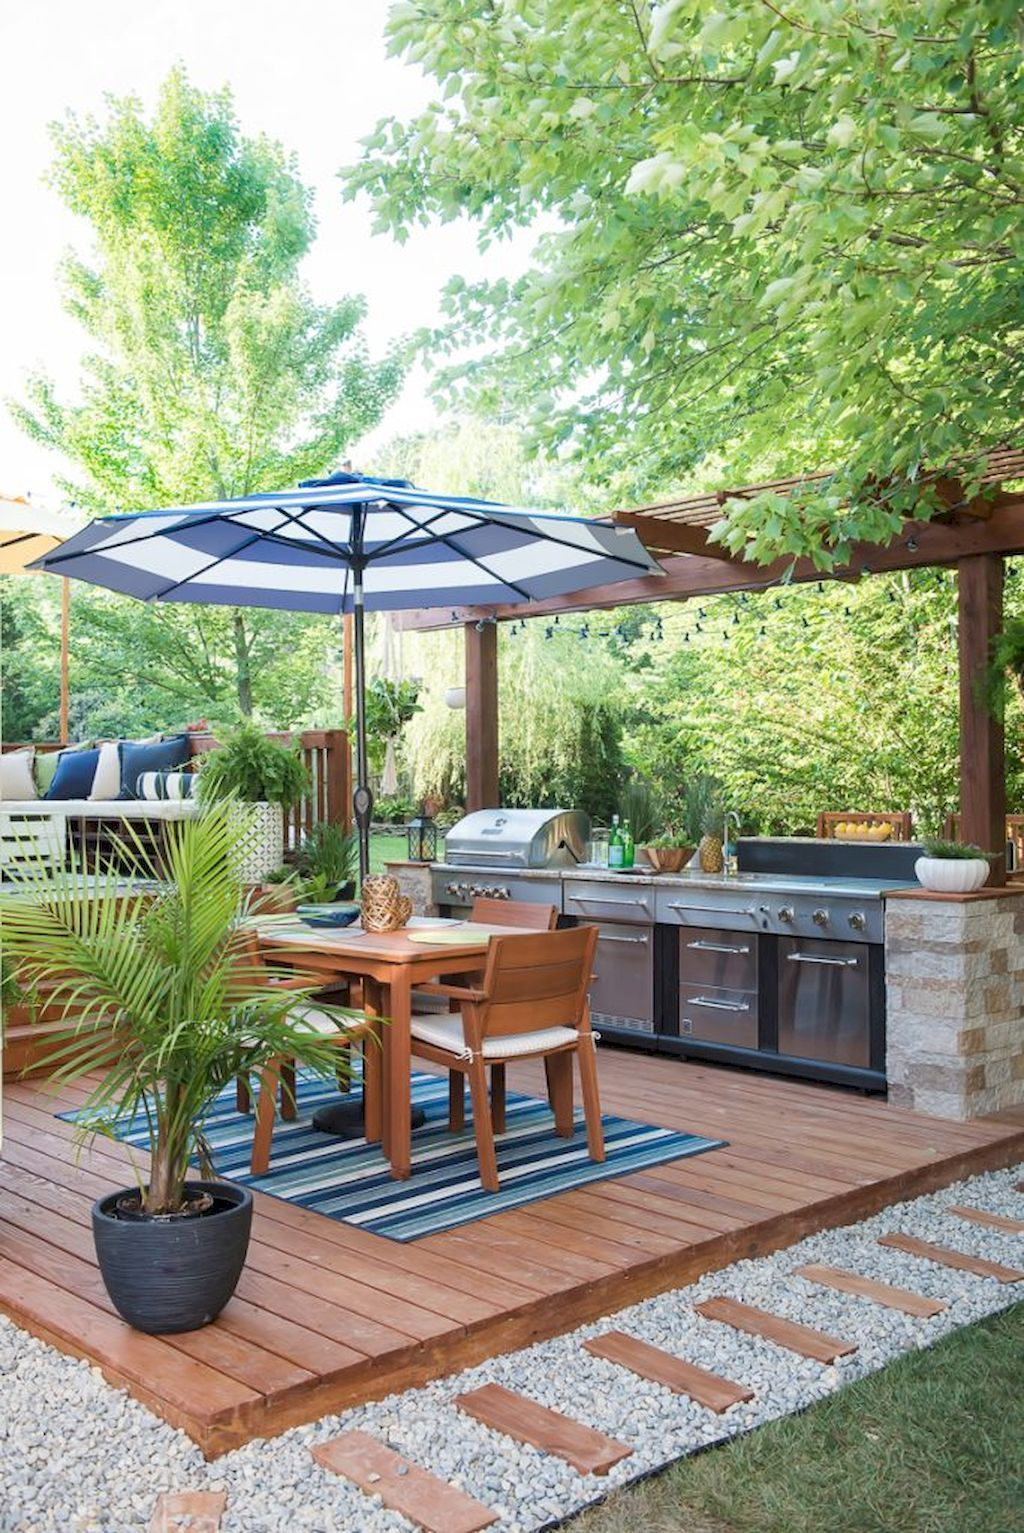 Awesome News Good Informations Starts From Awesome News Patio Design Backyard Patio Outdoor Decor